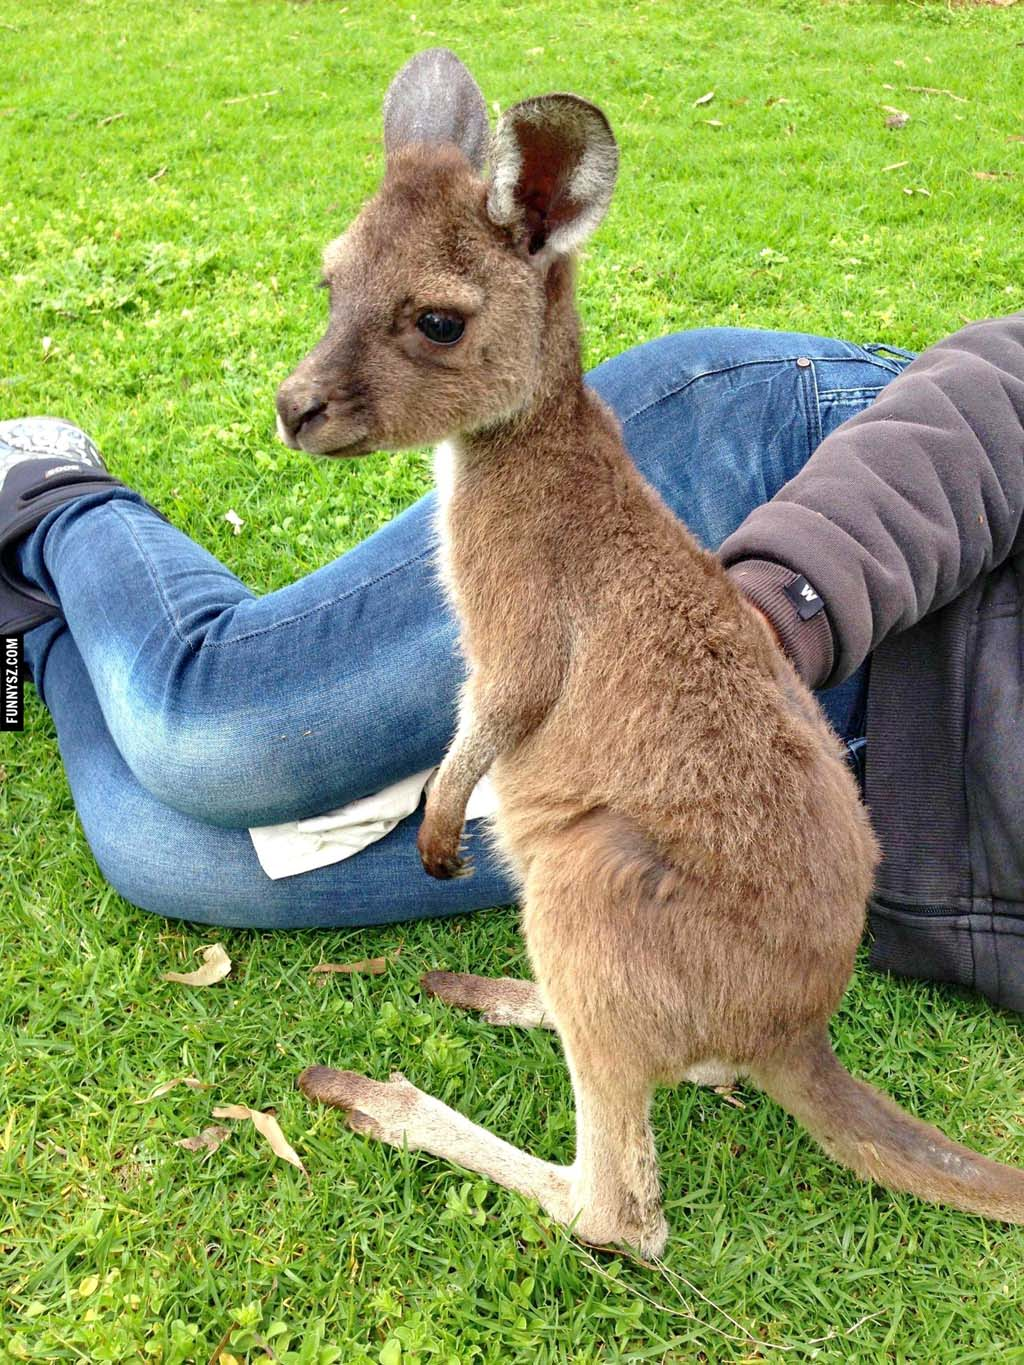 Baby Kangaroo,Kangaroo,baby animals,most adorable baby animals,cute baby animal